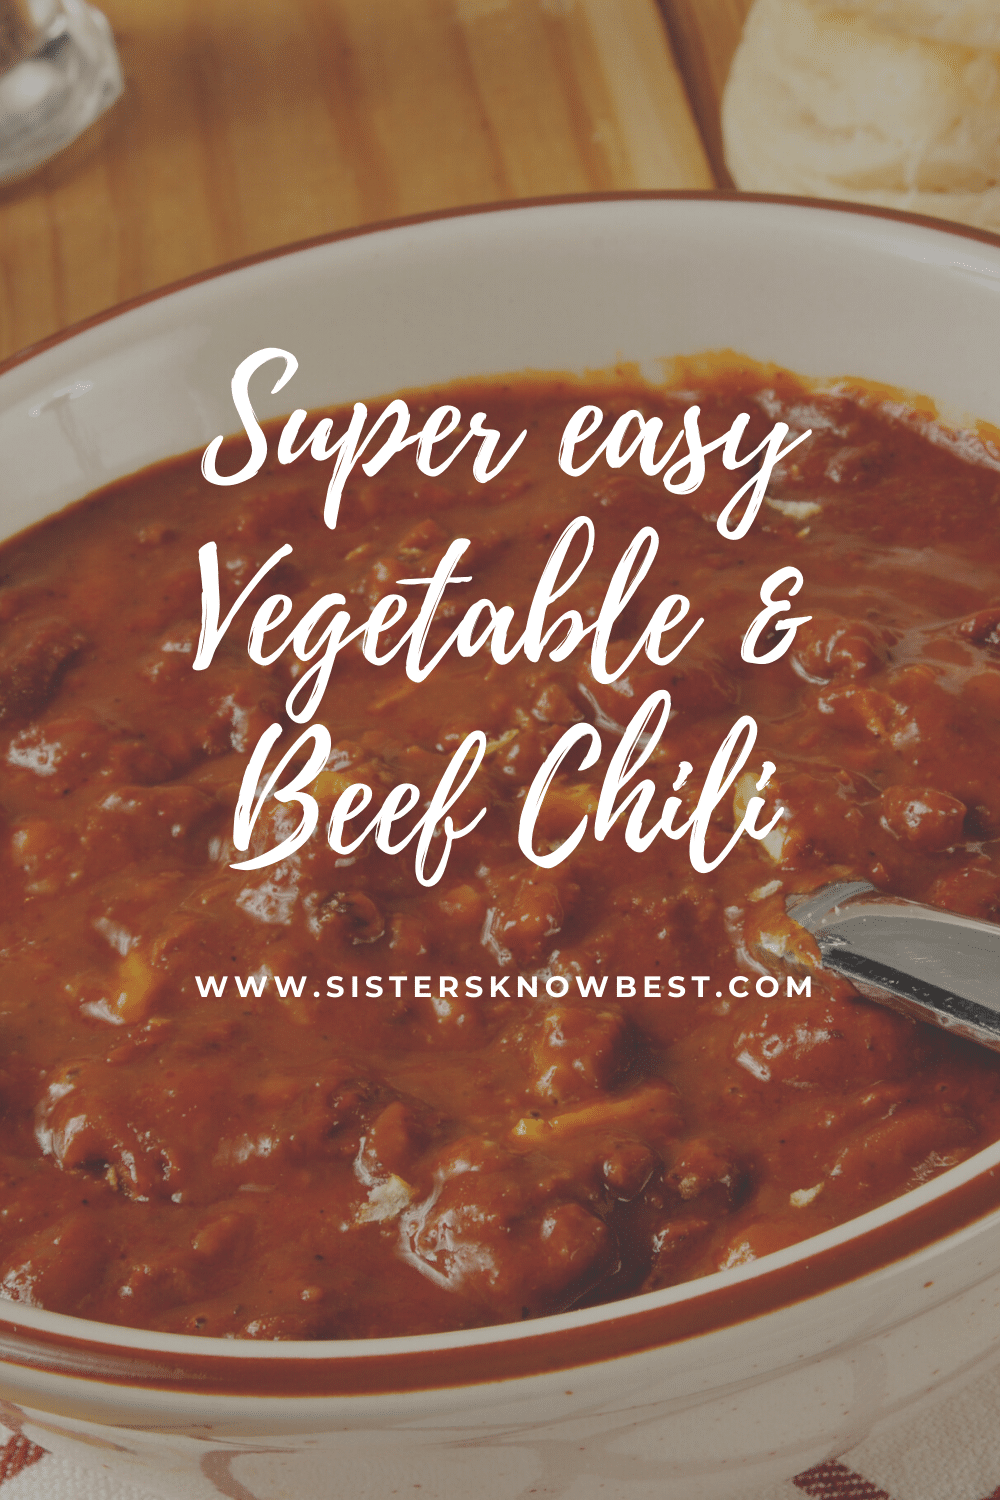 Vegetable and beef chili recipe